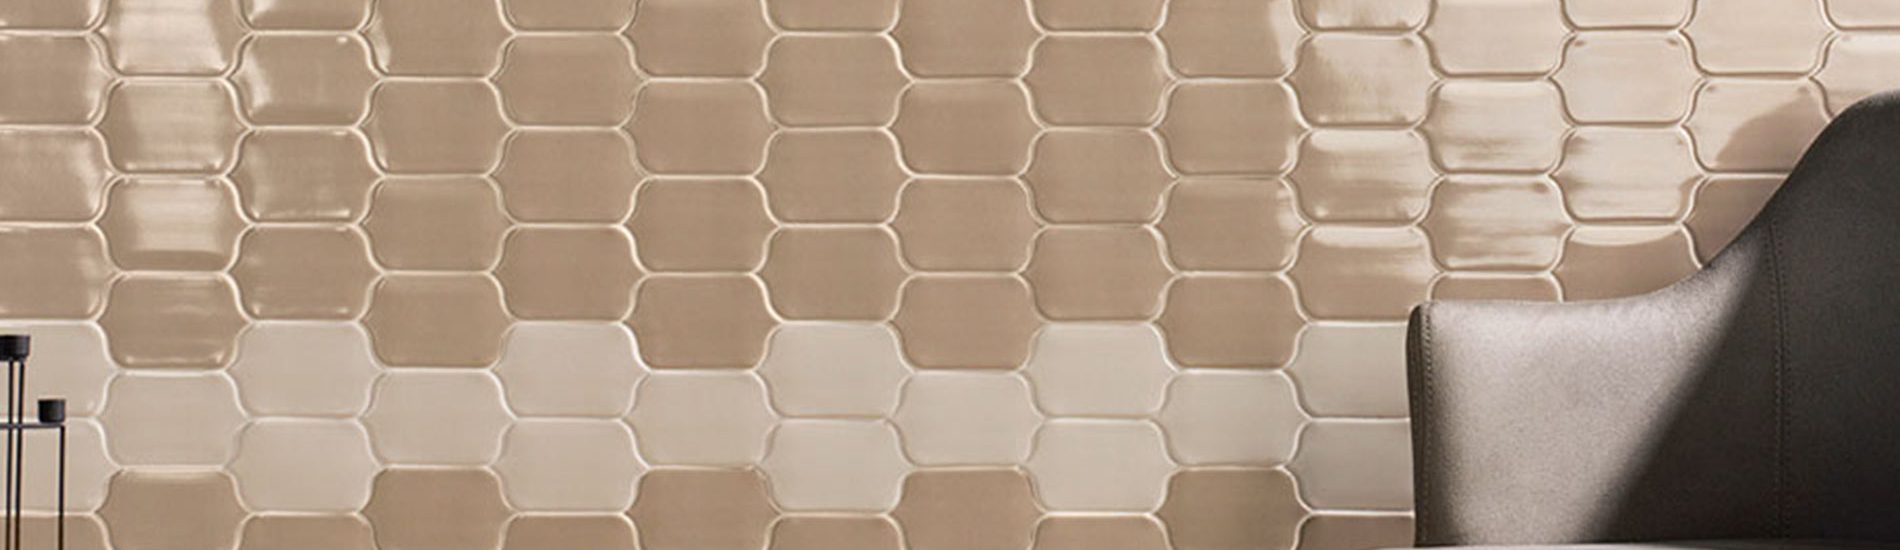 banner-riad-natucer-wall-tile-extruded